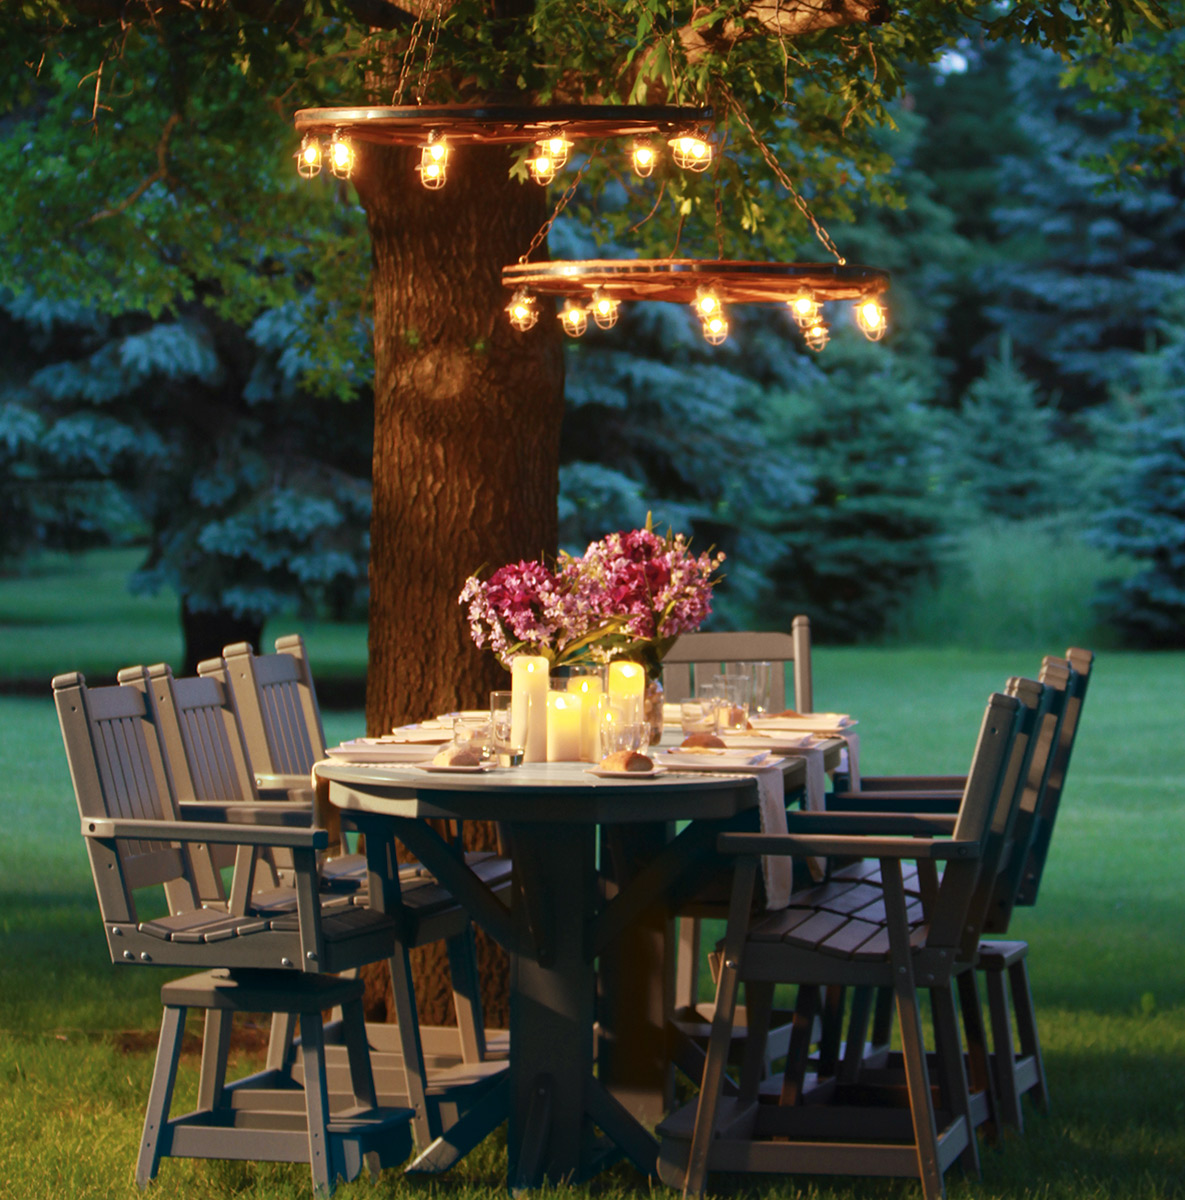 dining outdoors under the trees - lighting hung from trees